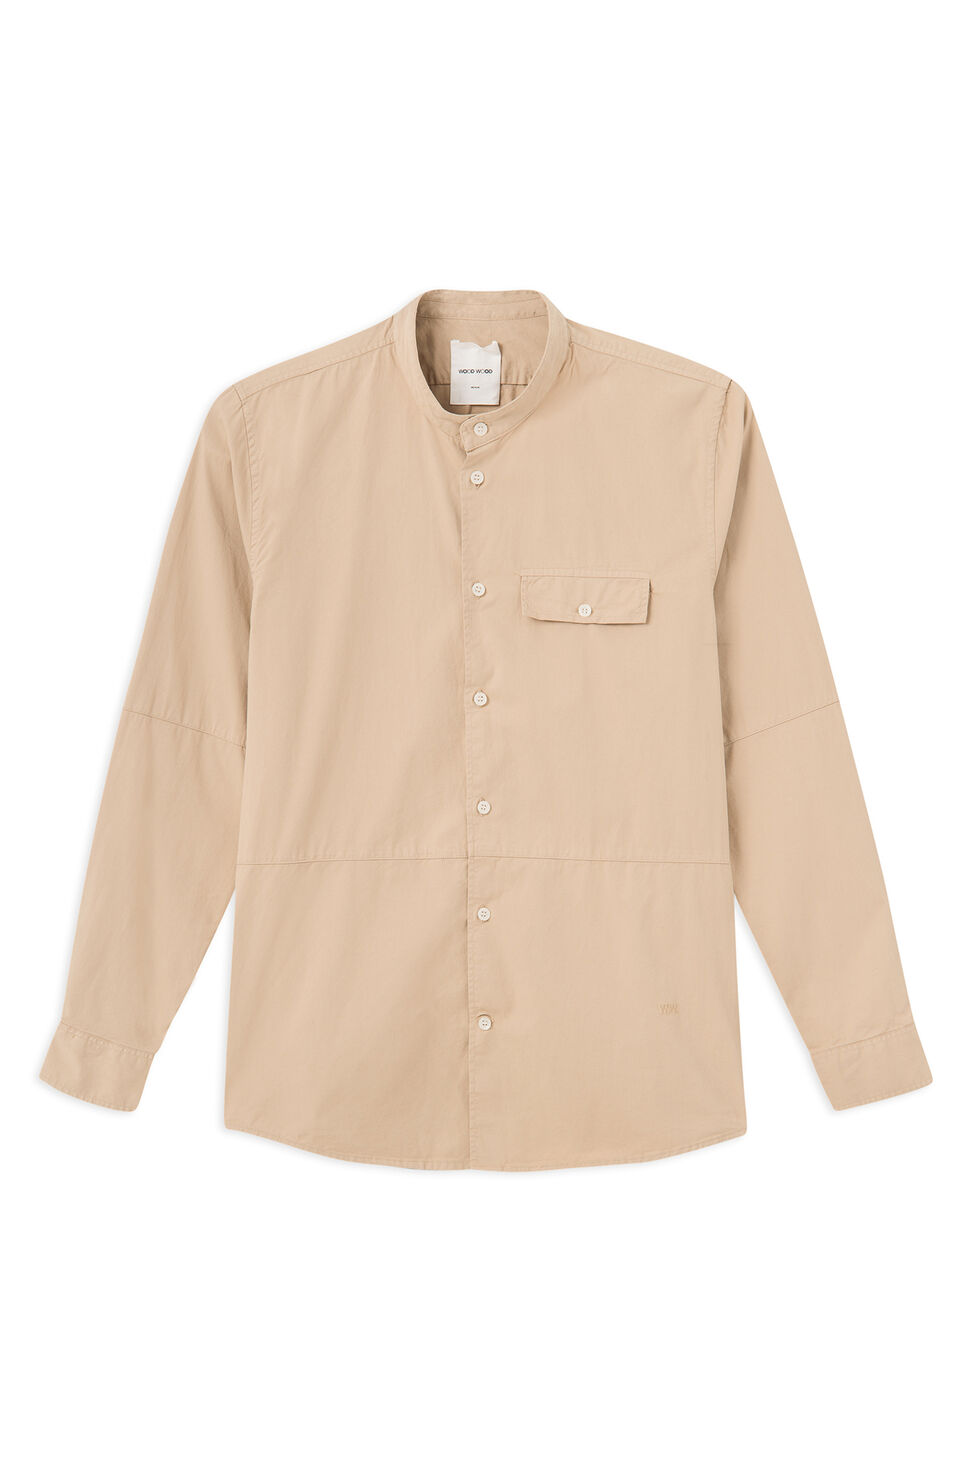 Alvaro shirt 11915311-1152, LIGHT KHAKI